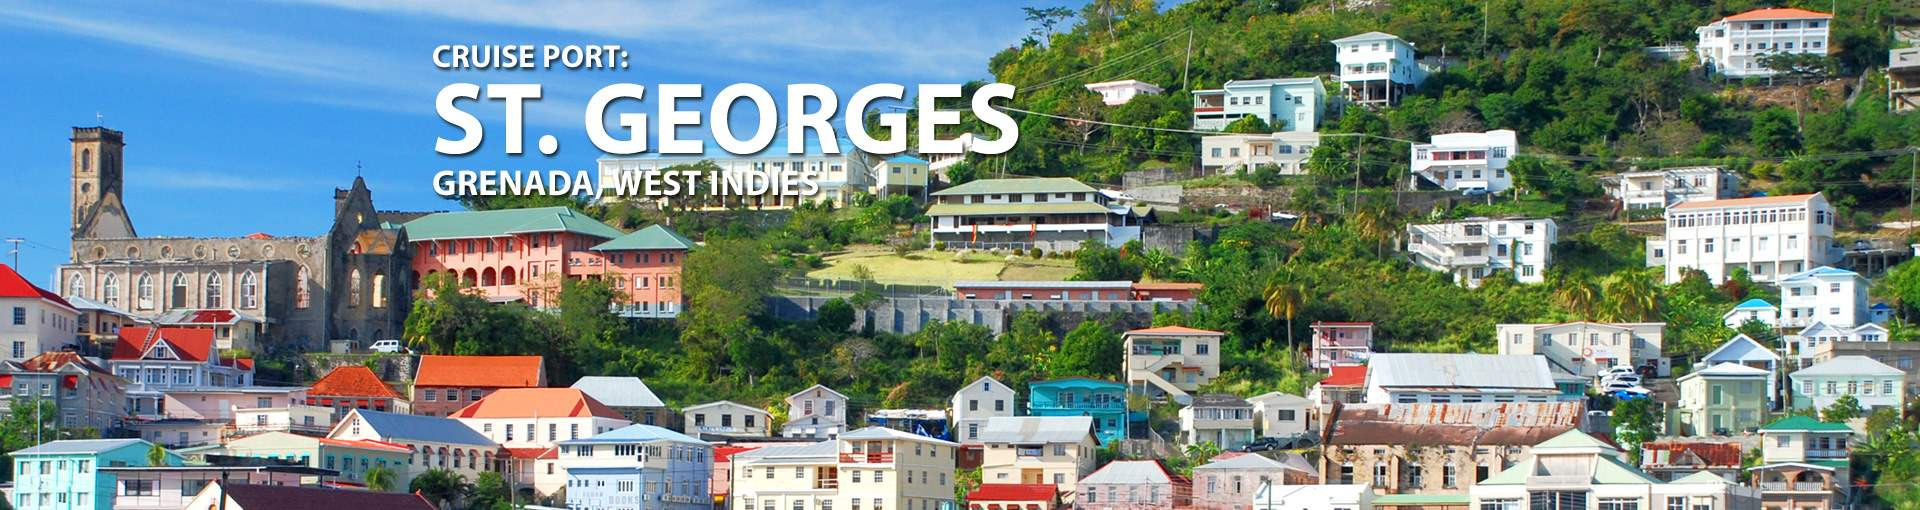 Cruises to St. Georges, Grenada, West Indies